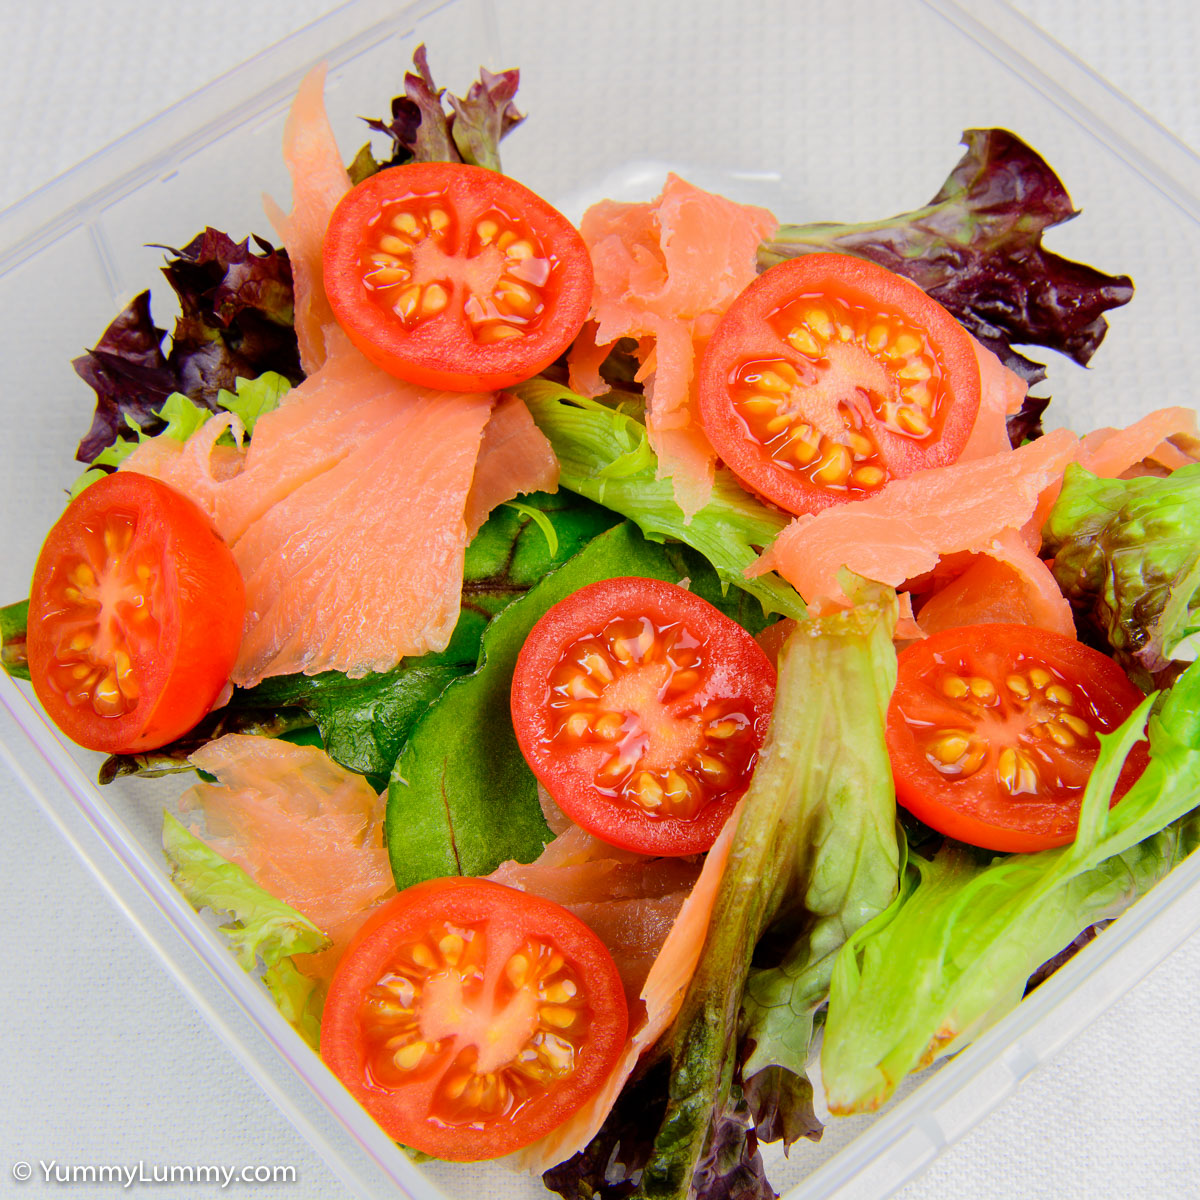 Smoked salmon and tomatoes for lunch